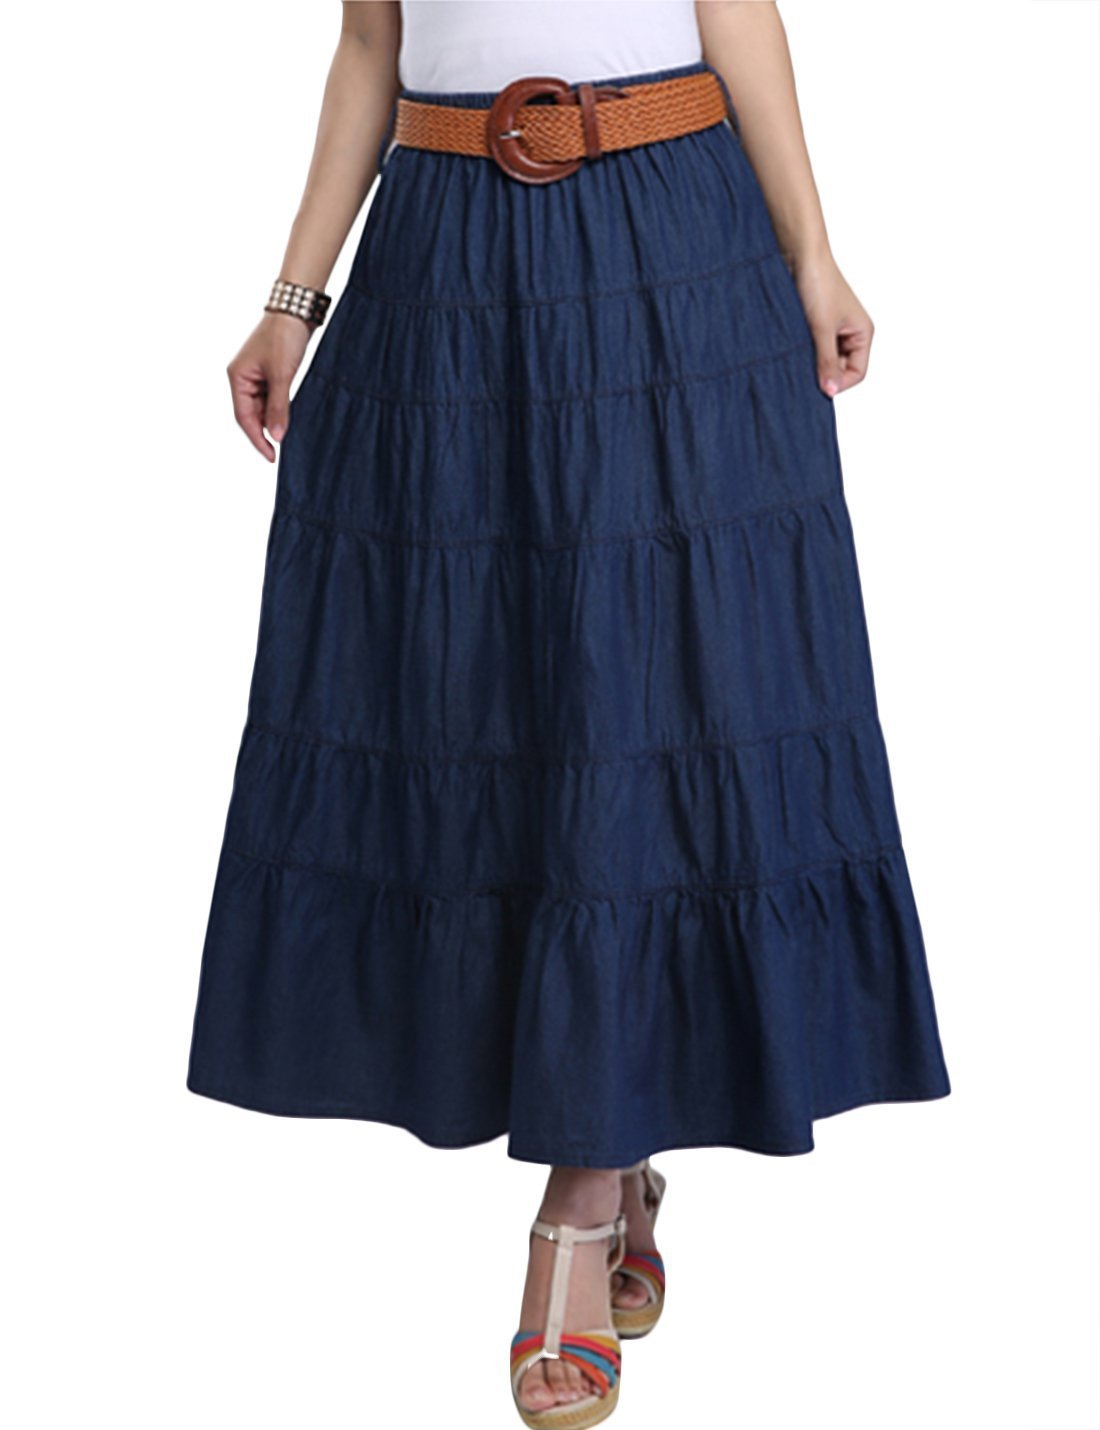 Tanming Women Dark Blue Casual Loose Denim Long Skirts (Large, Blue TM2)